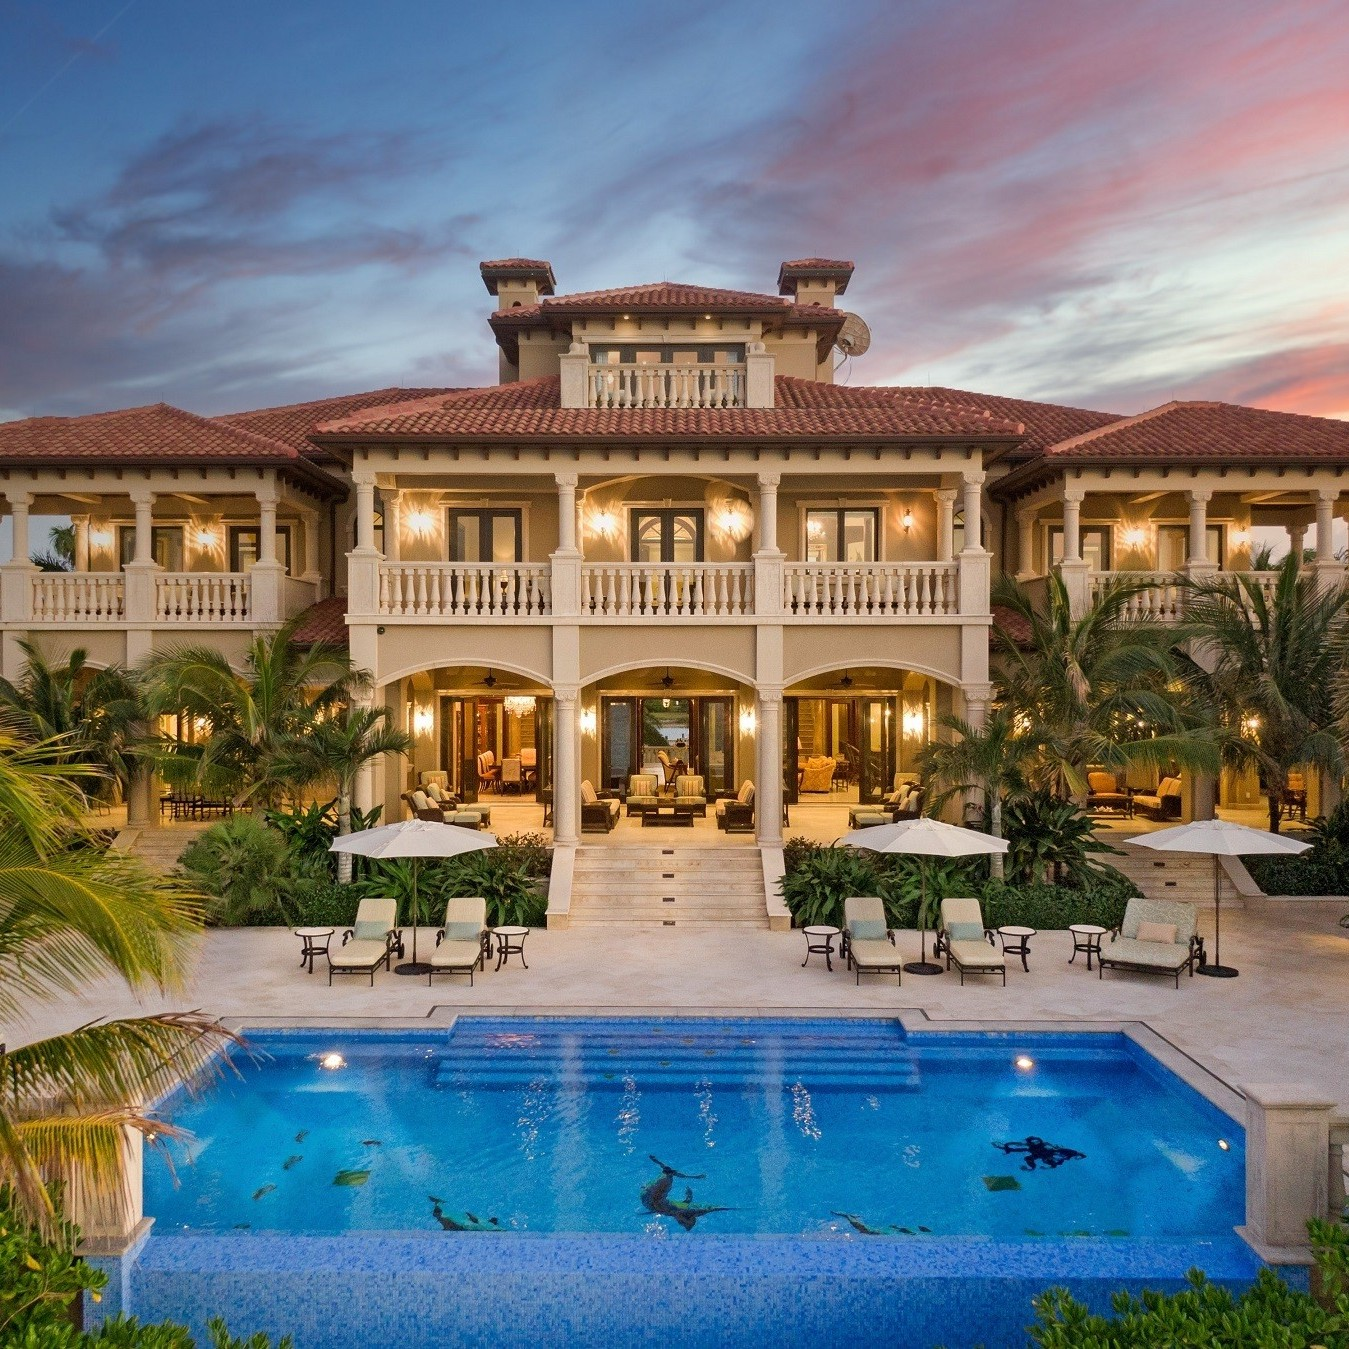 Best place to buy property in the bahamas: The Impeccable Krystal House at Old Fort Bay, $32,000,000